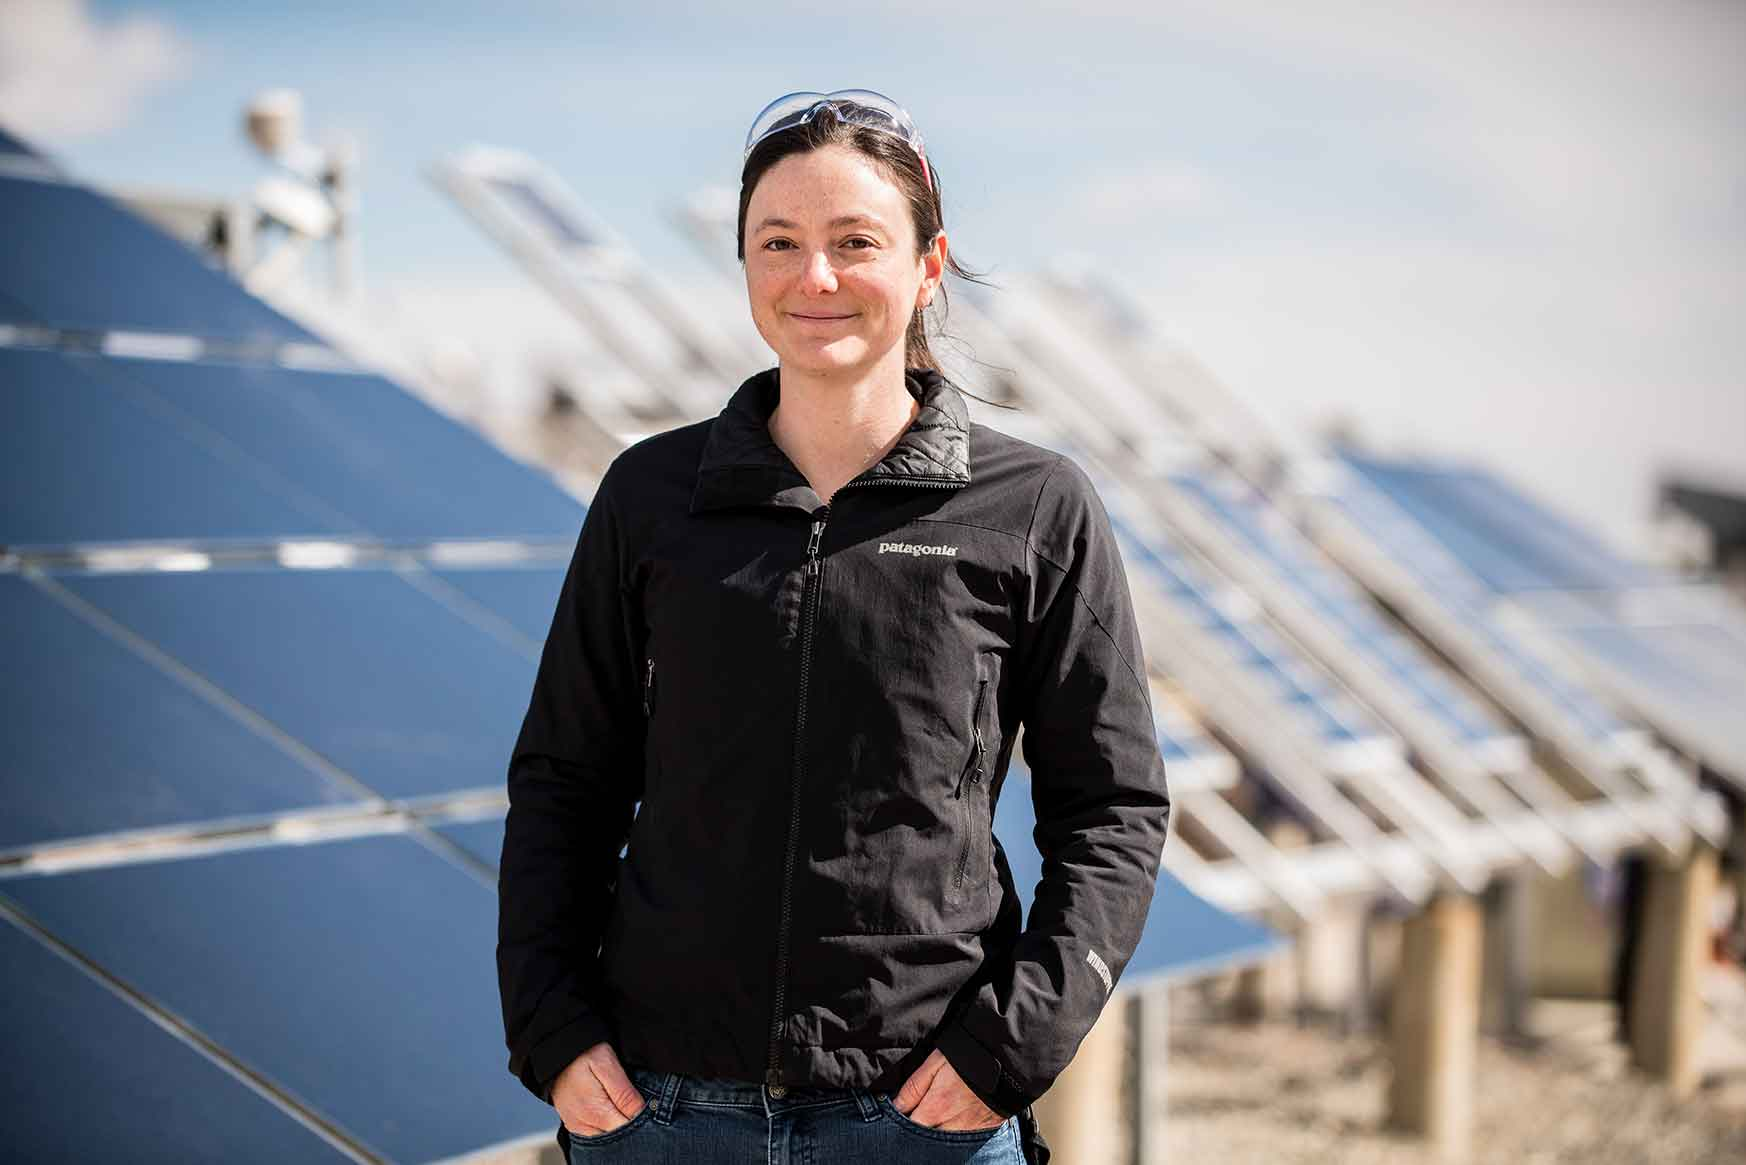 A woman stands in front of solar panels.